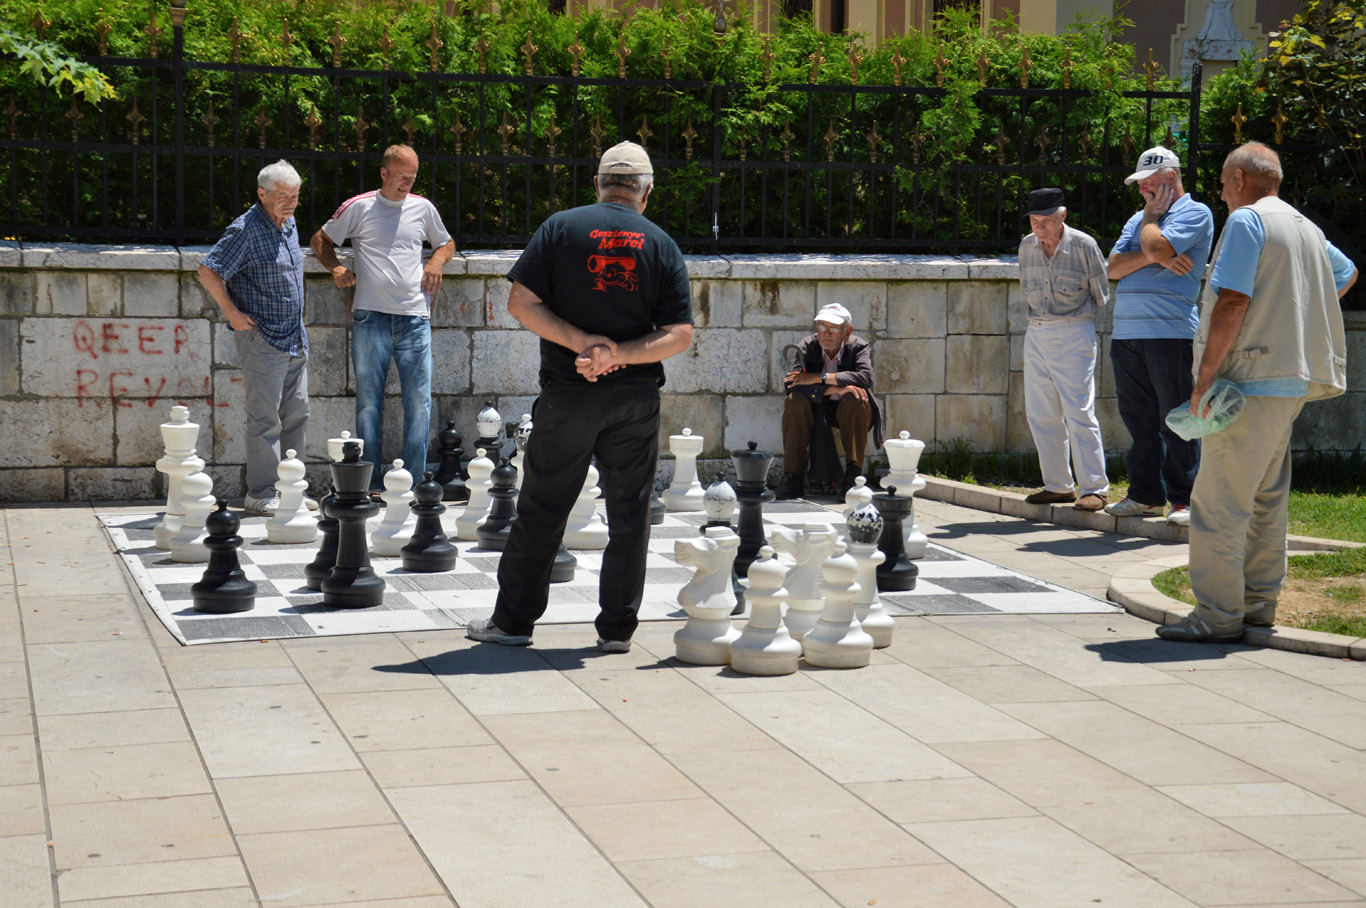 Elderly men playing chess in the street